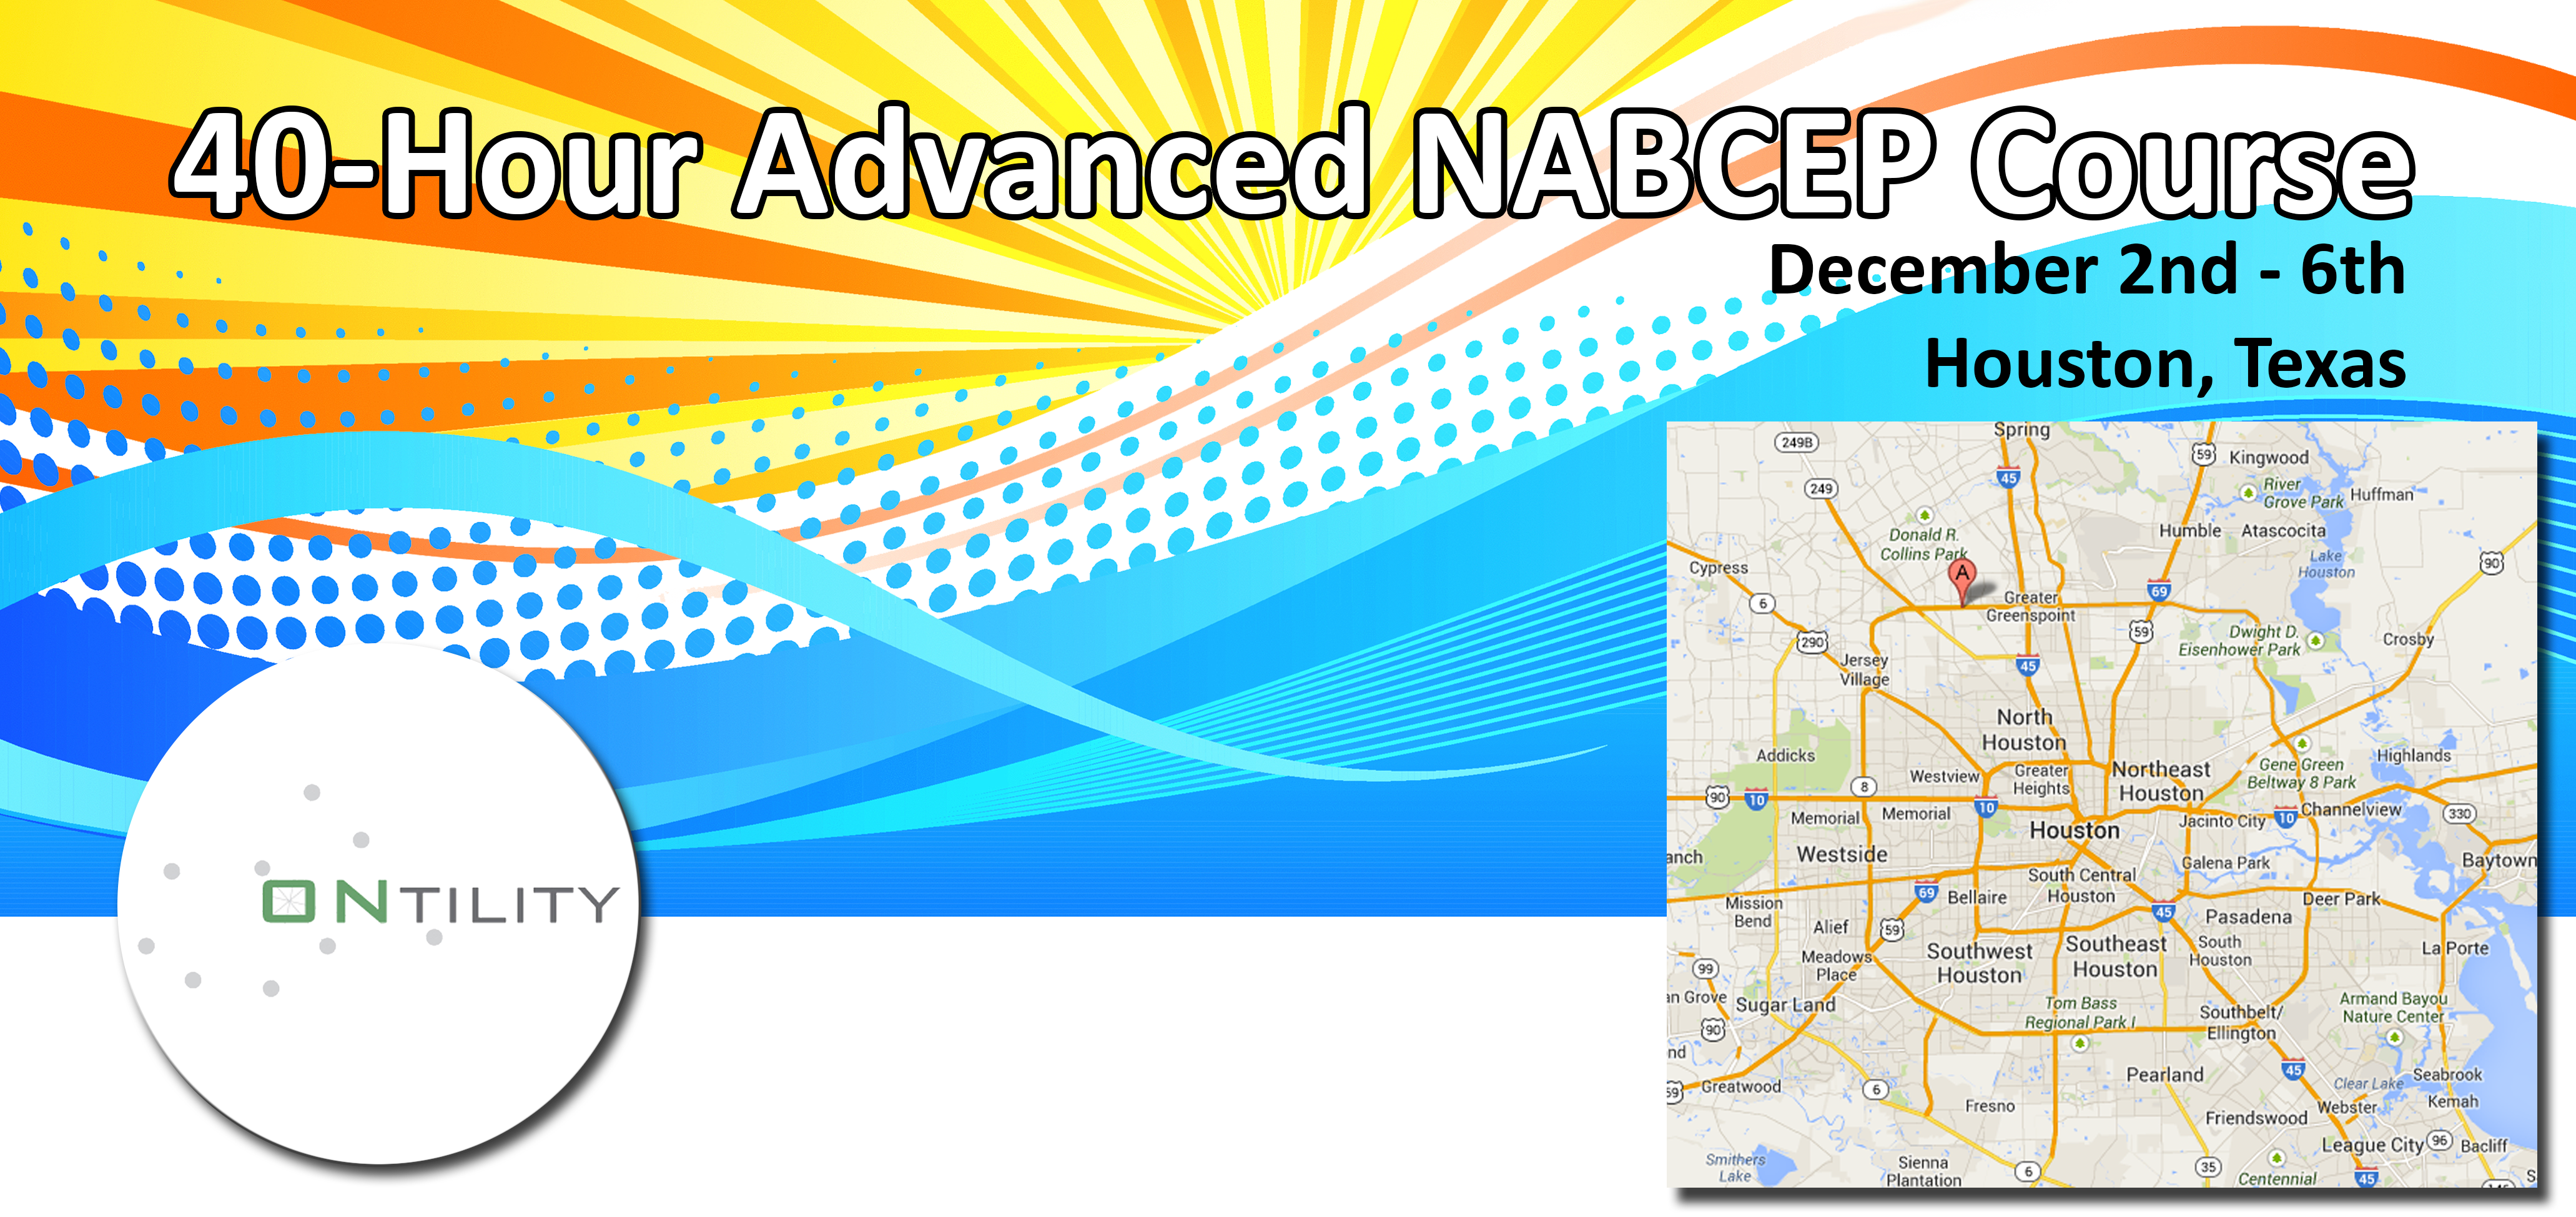 40-Hour Advanced NABCEP Course